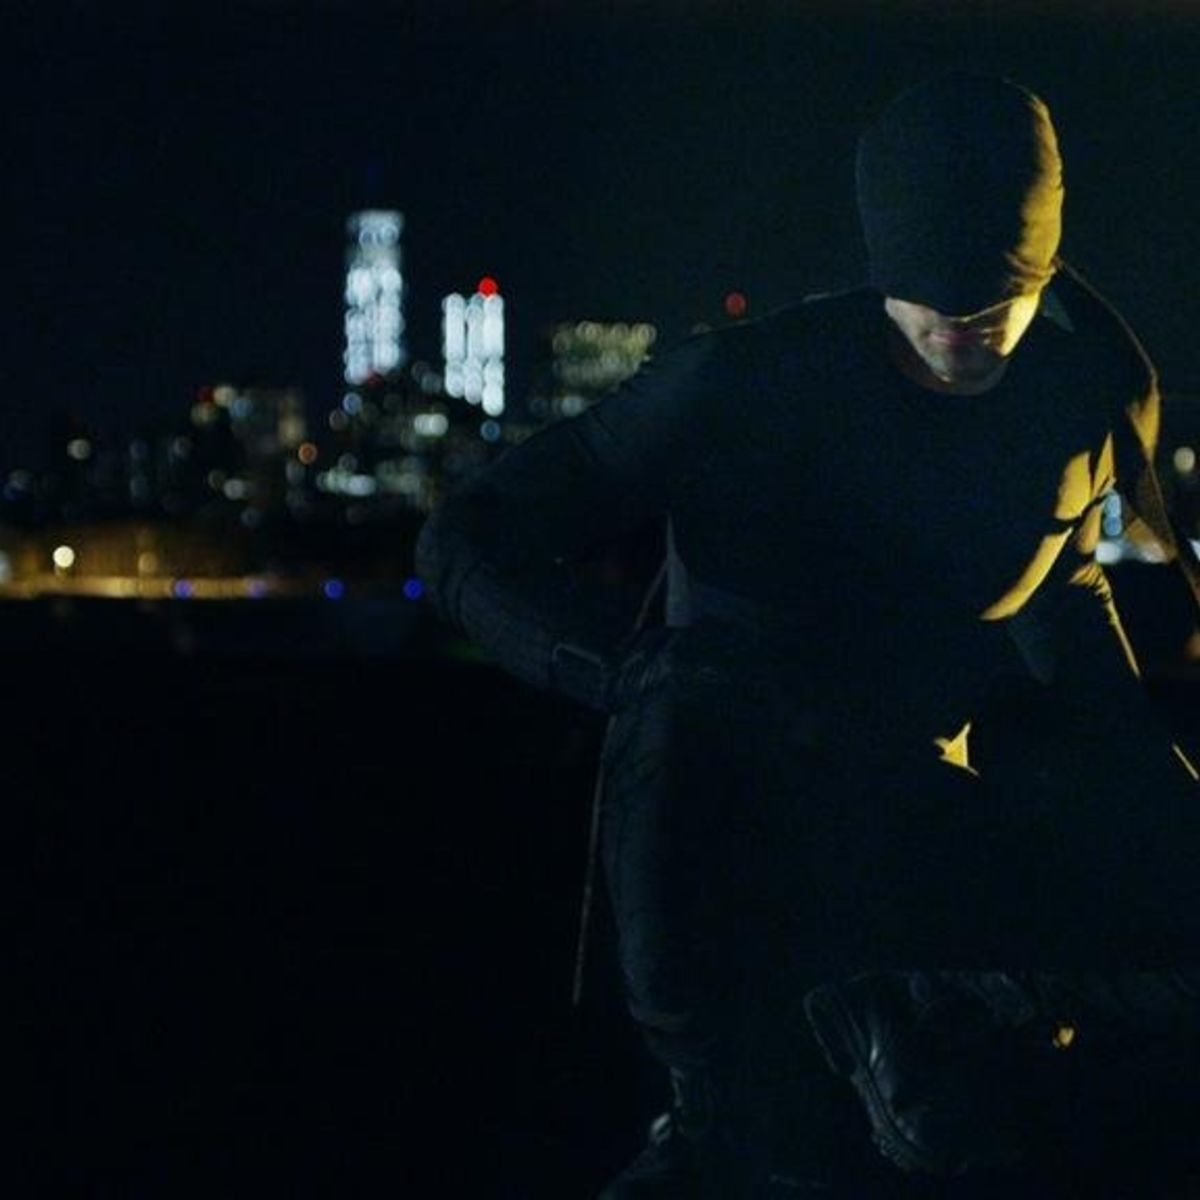 take-a-look-at-the-first-footage-from-netflix-s-daredevil-in-new-teaser-trailer-f4c102ce-2b3a-4ce1-ac68-26d515d1e47b.jpeg